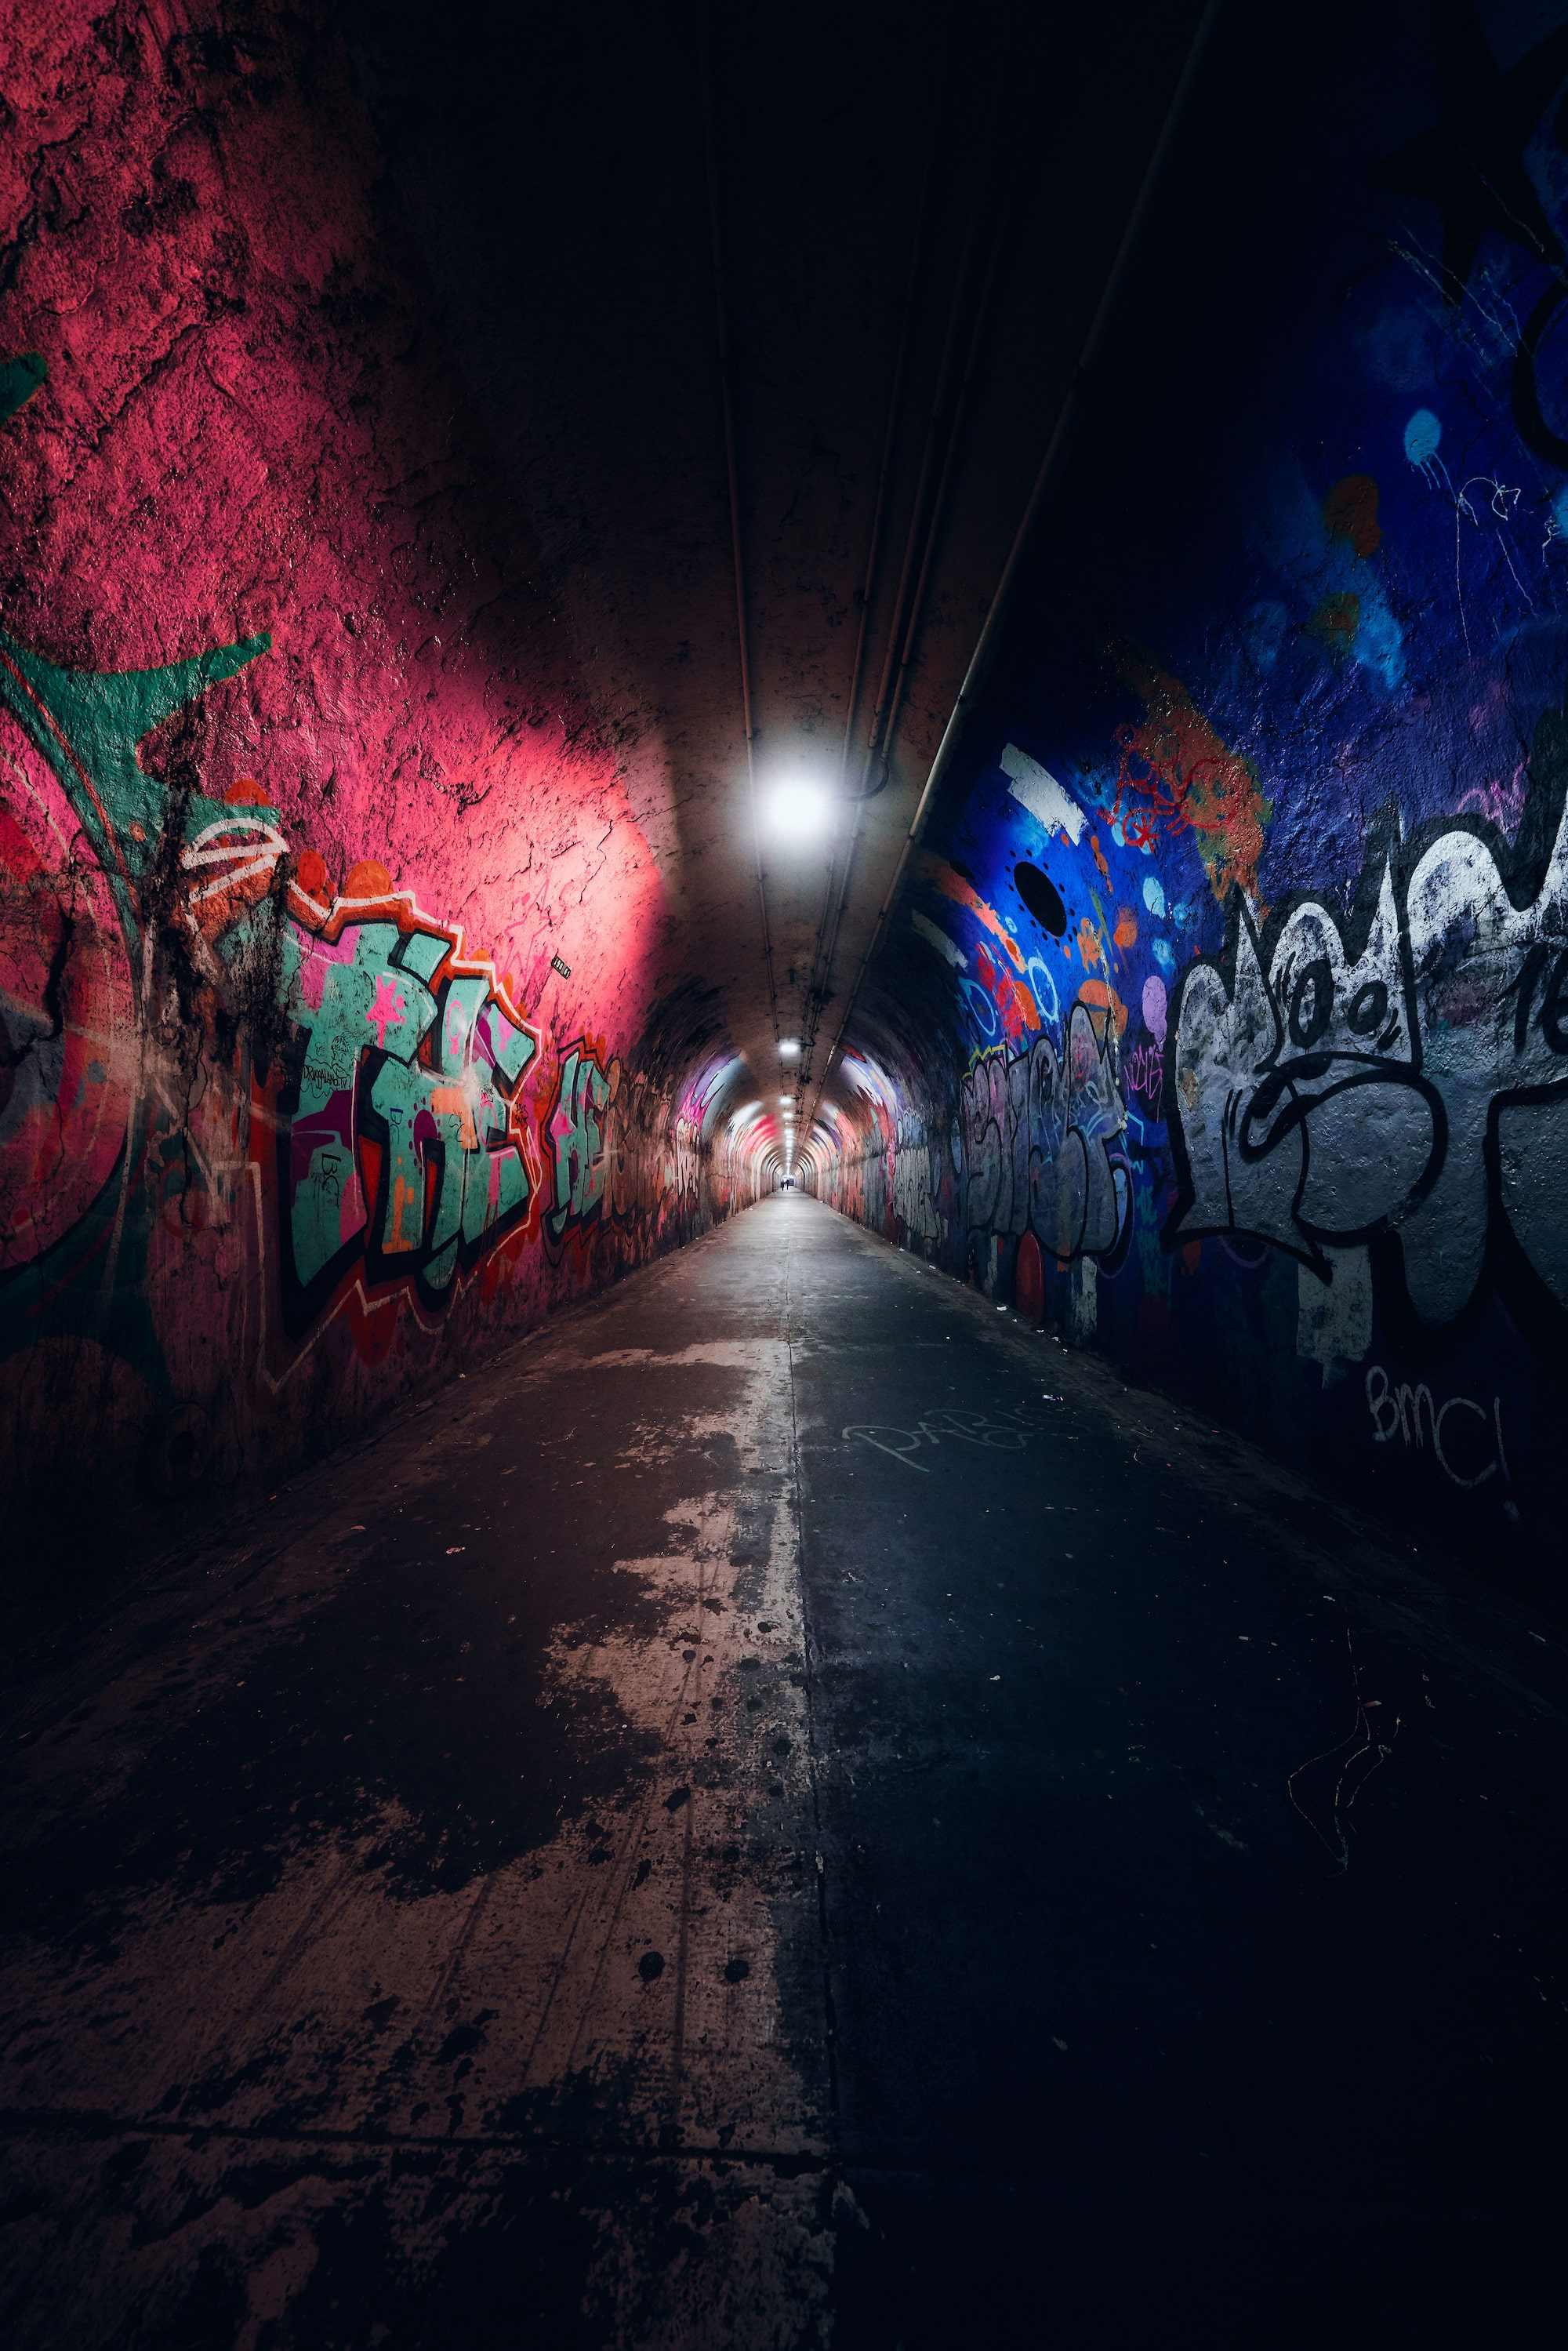 Ron Timehin sony alpha 7RM3 a gloomy tunnel in new york with graffiti on the walls